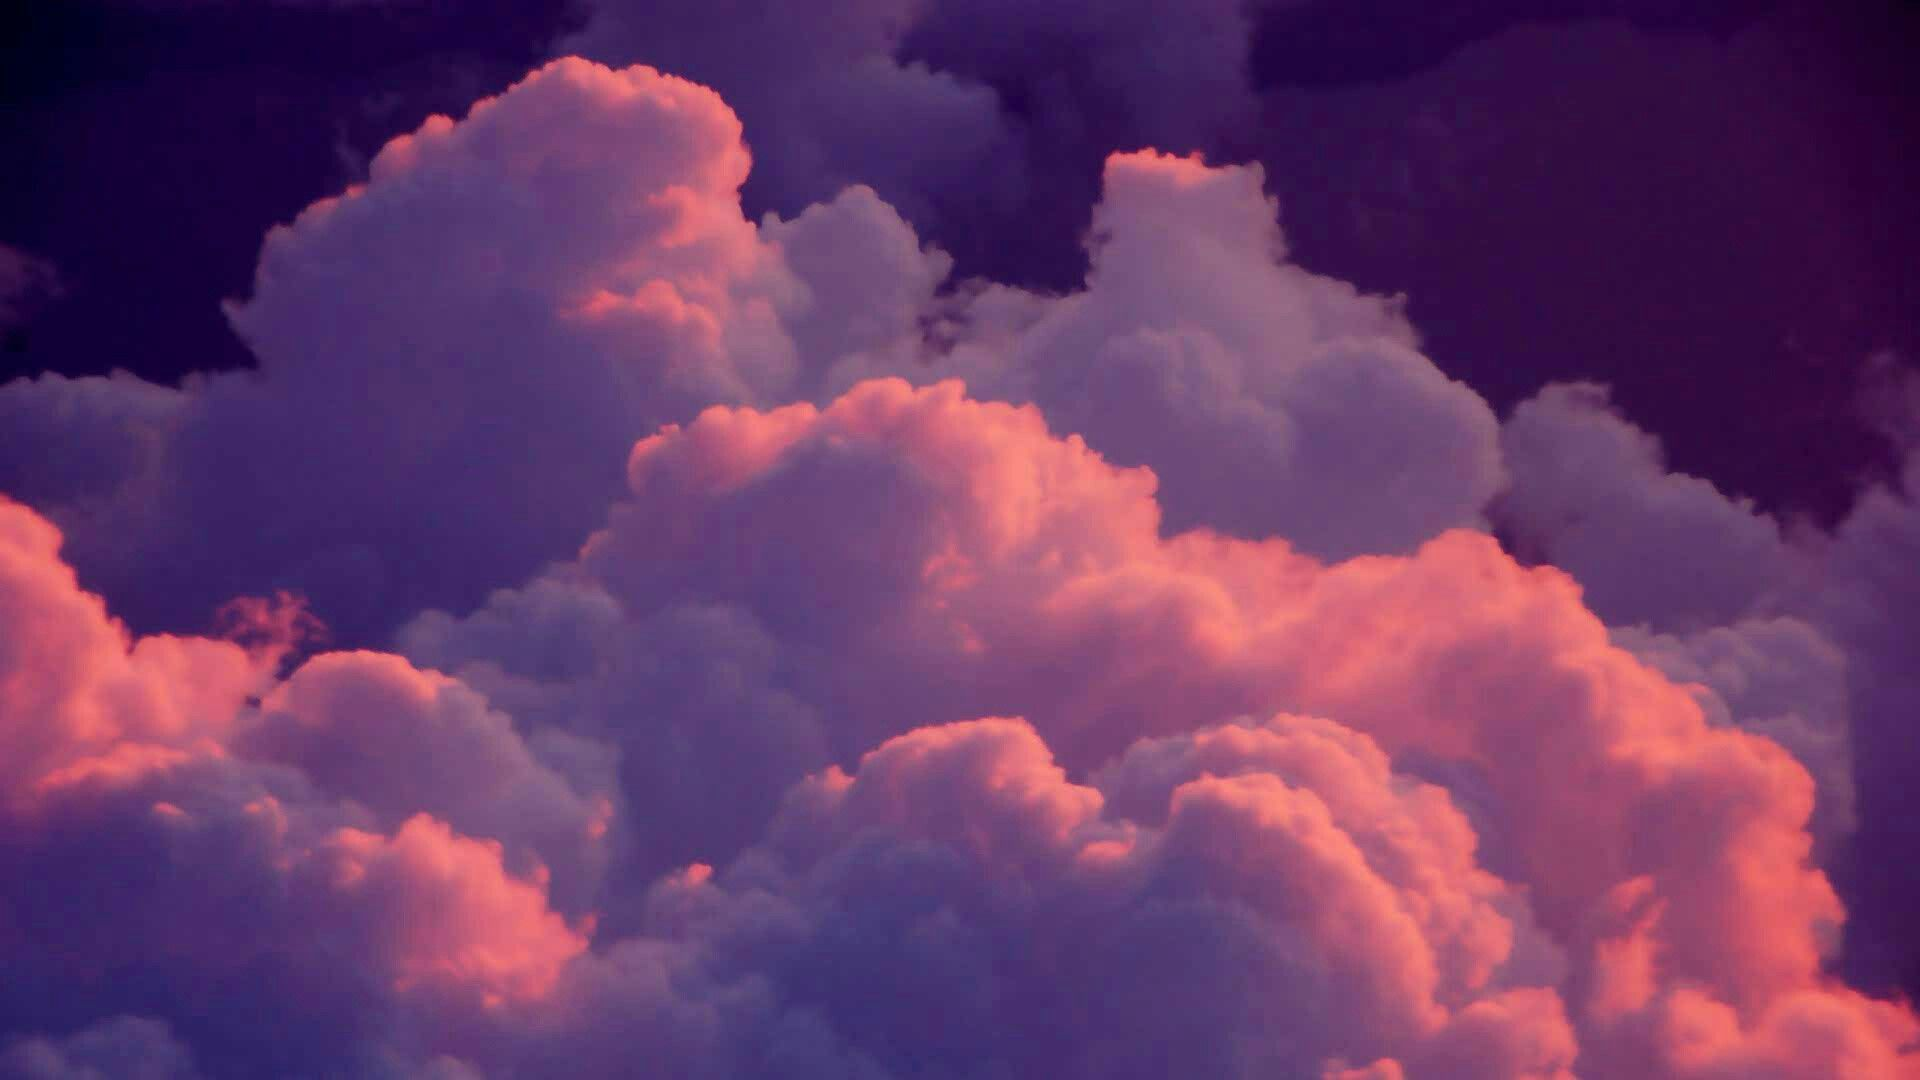 Pin By Laura Matthews On Clouds Pink Clouds Wallpaper Aesthetic Desktop Wallpaper Aesthetic Wallpapers